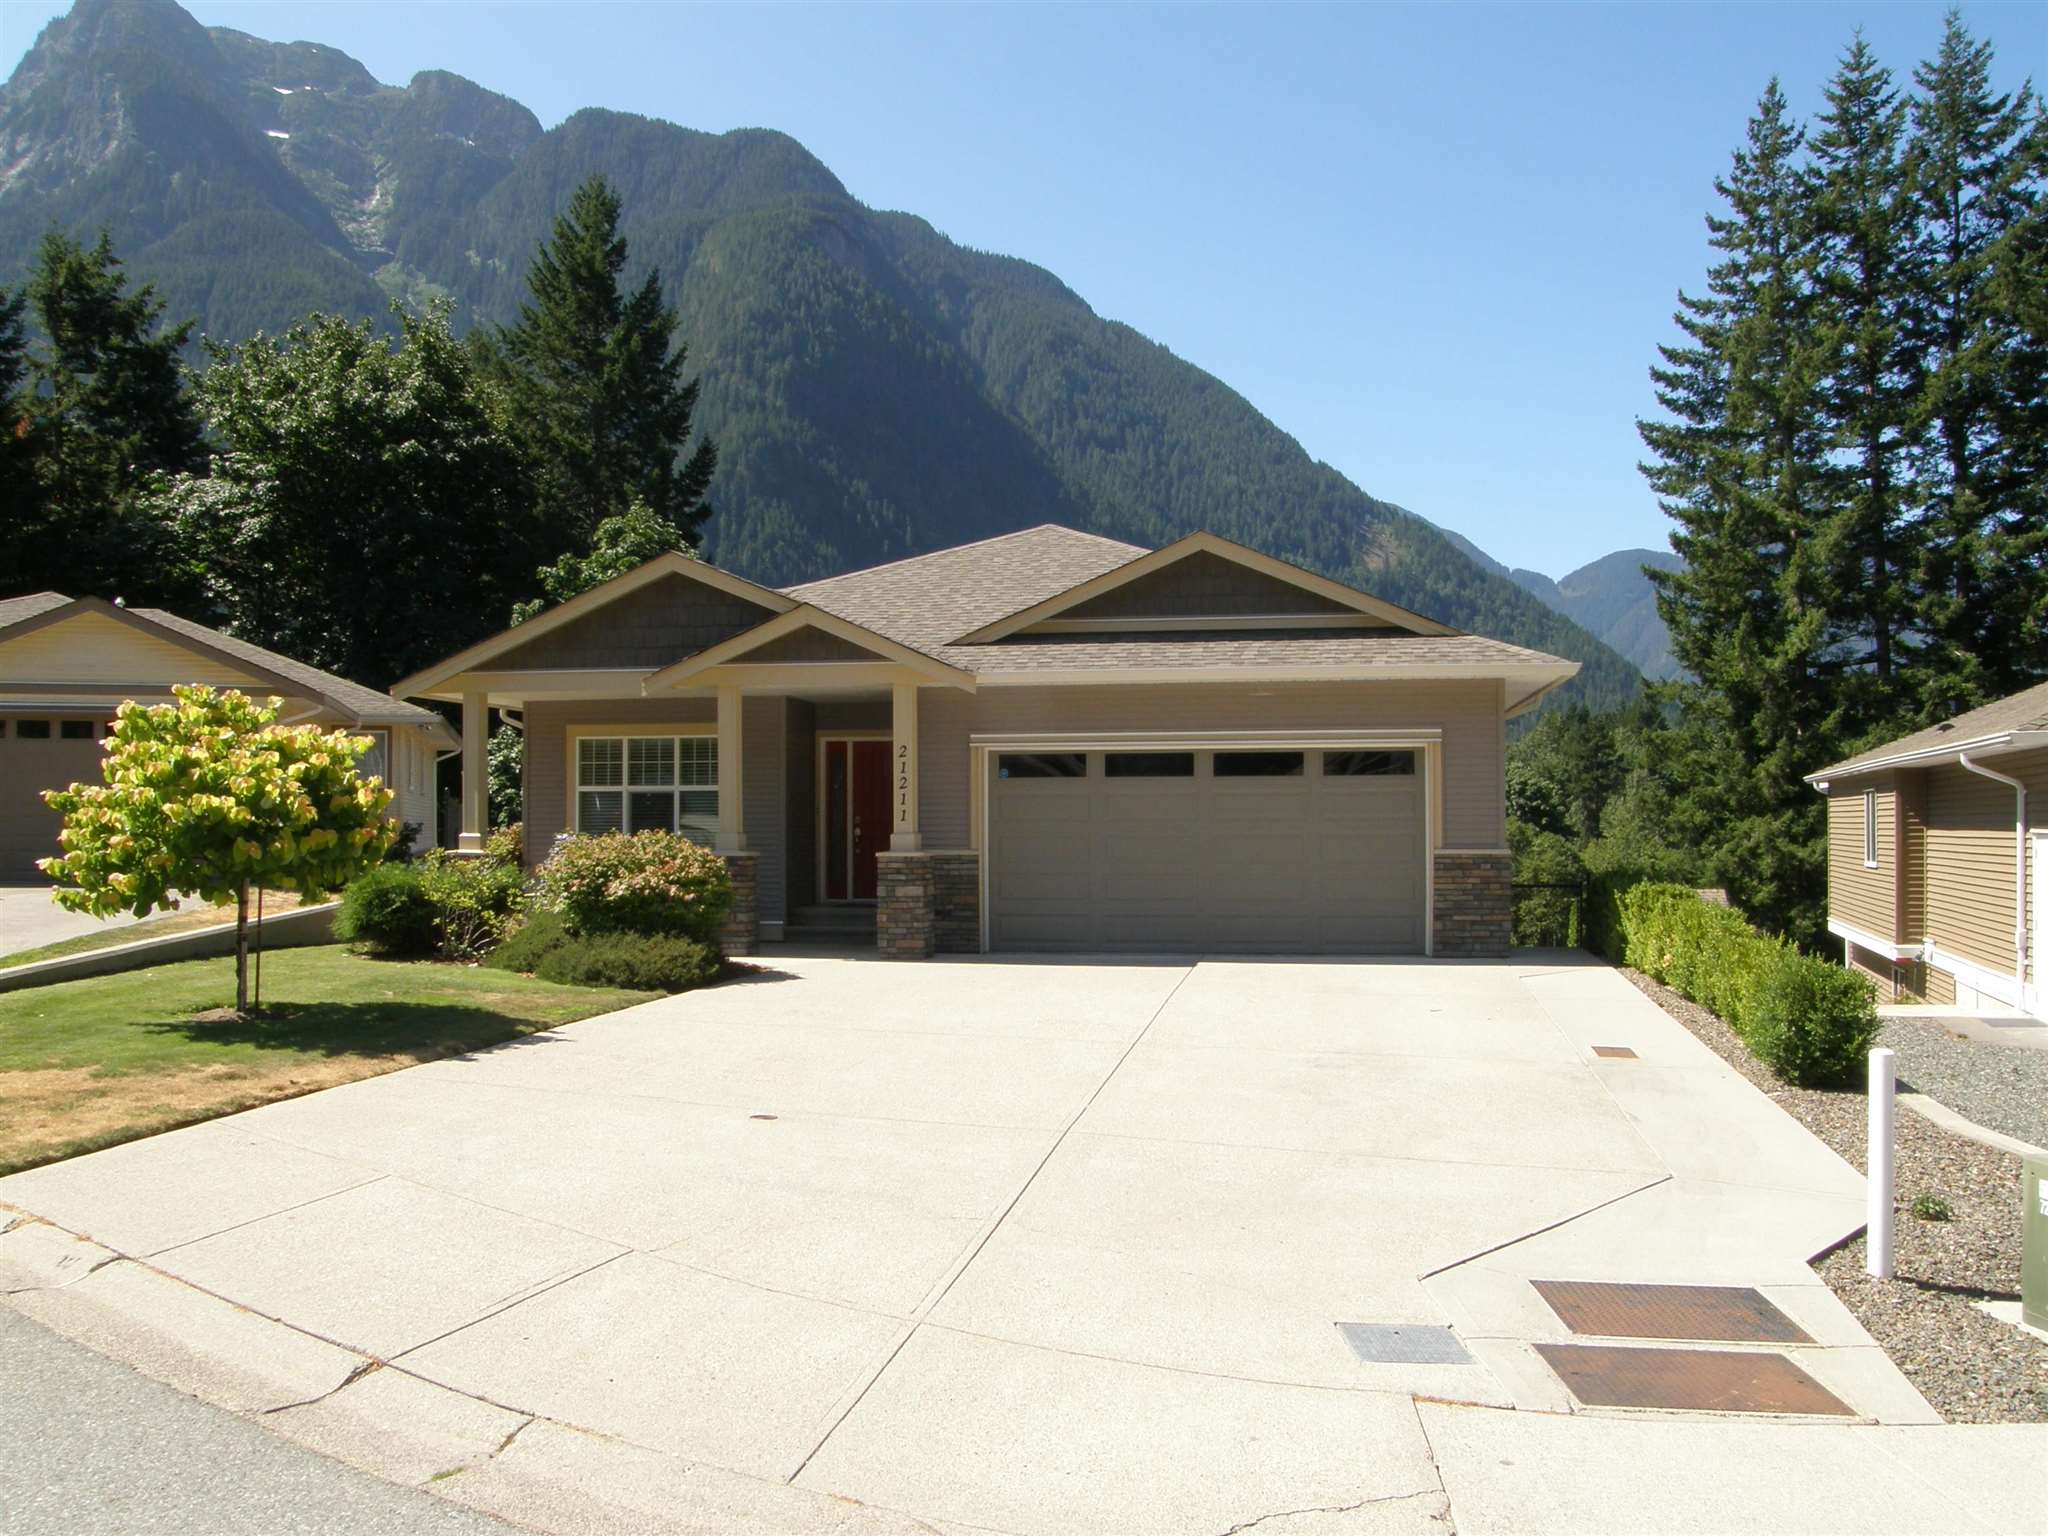 21211 KETTLE VALLEY PLACE - Hope Kawkawa Lake House/Single Family for sale, 3 Bedrooms (R2604665) - #1